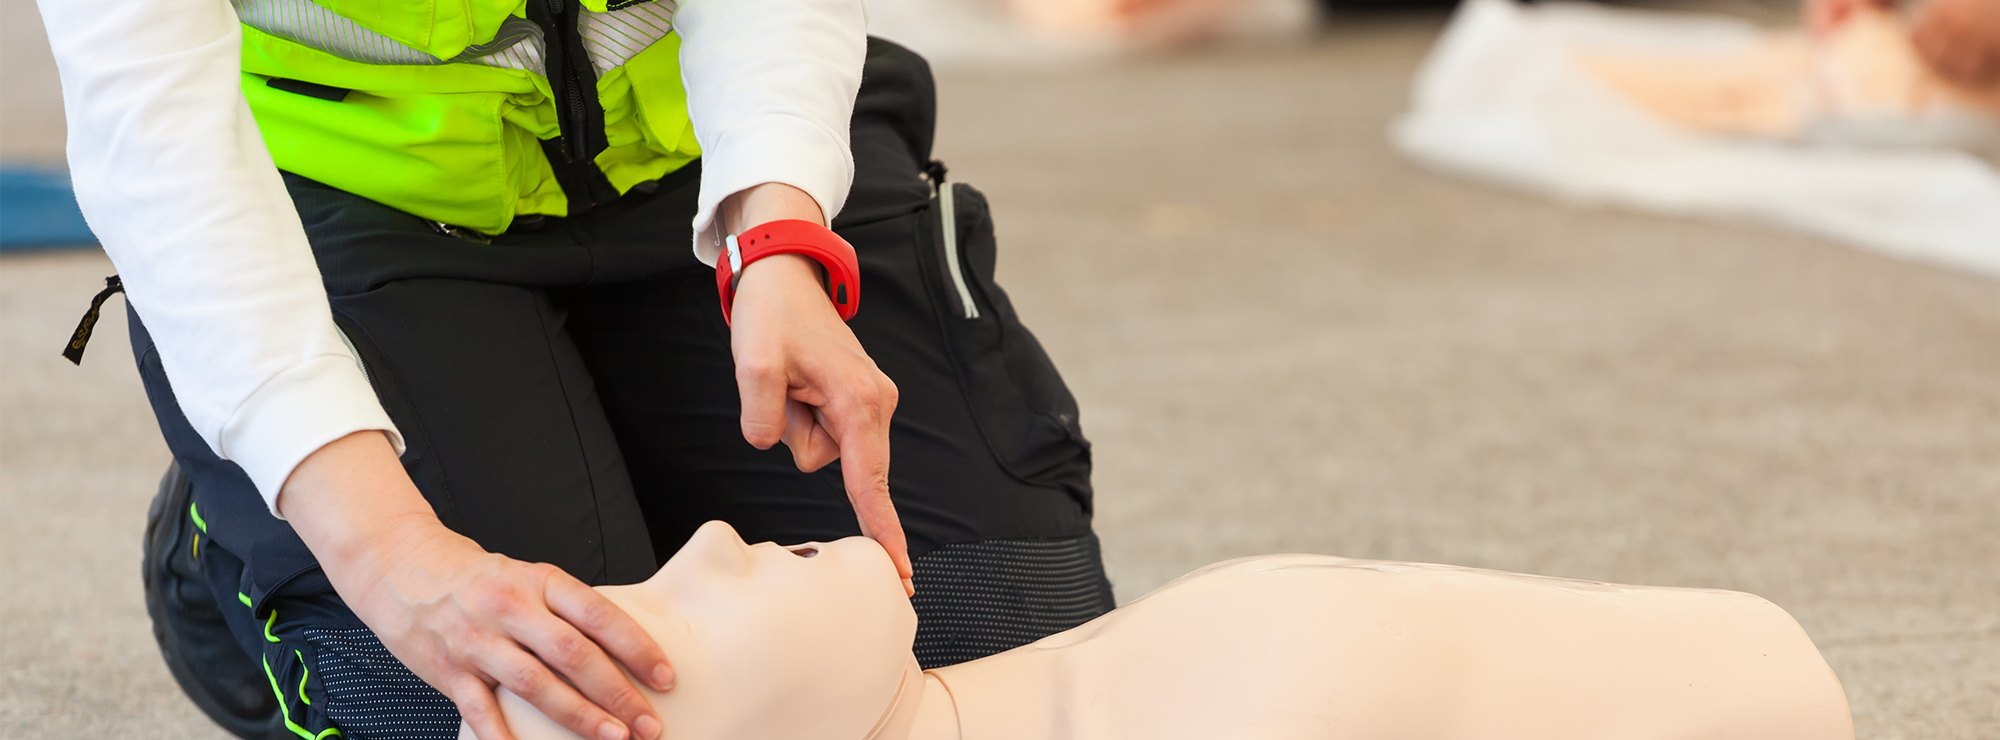 CPR dummy and EMS worker